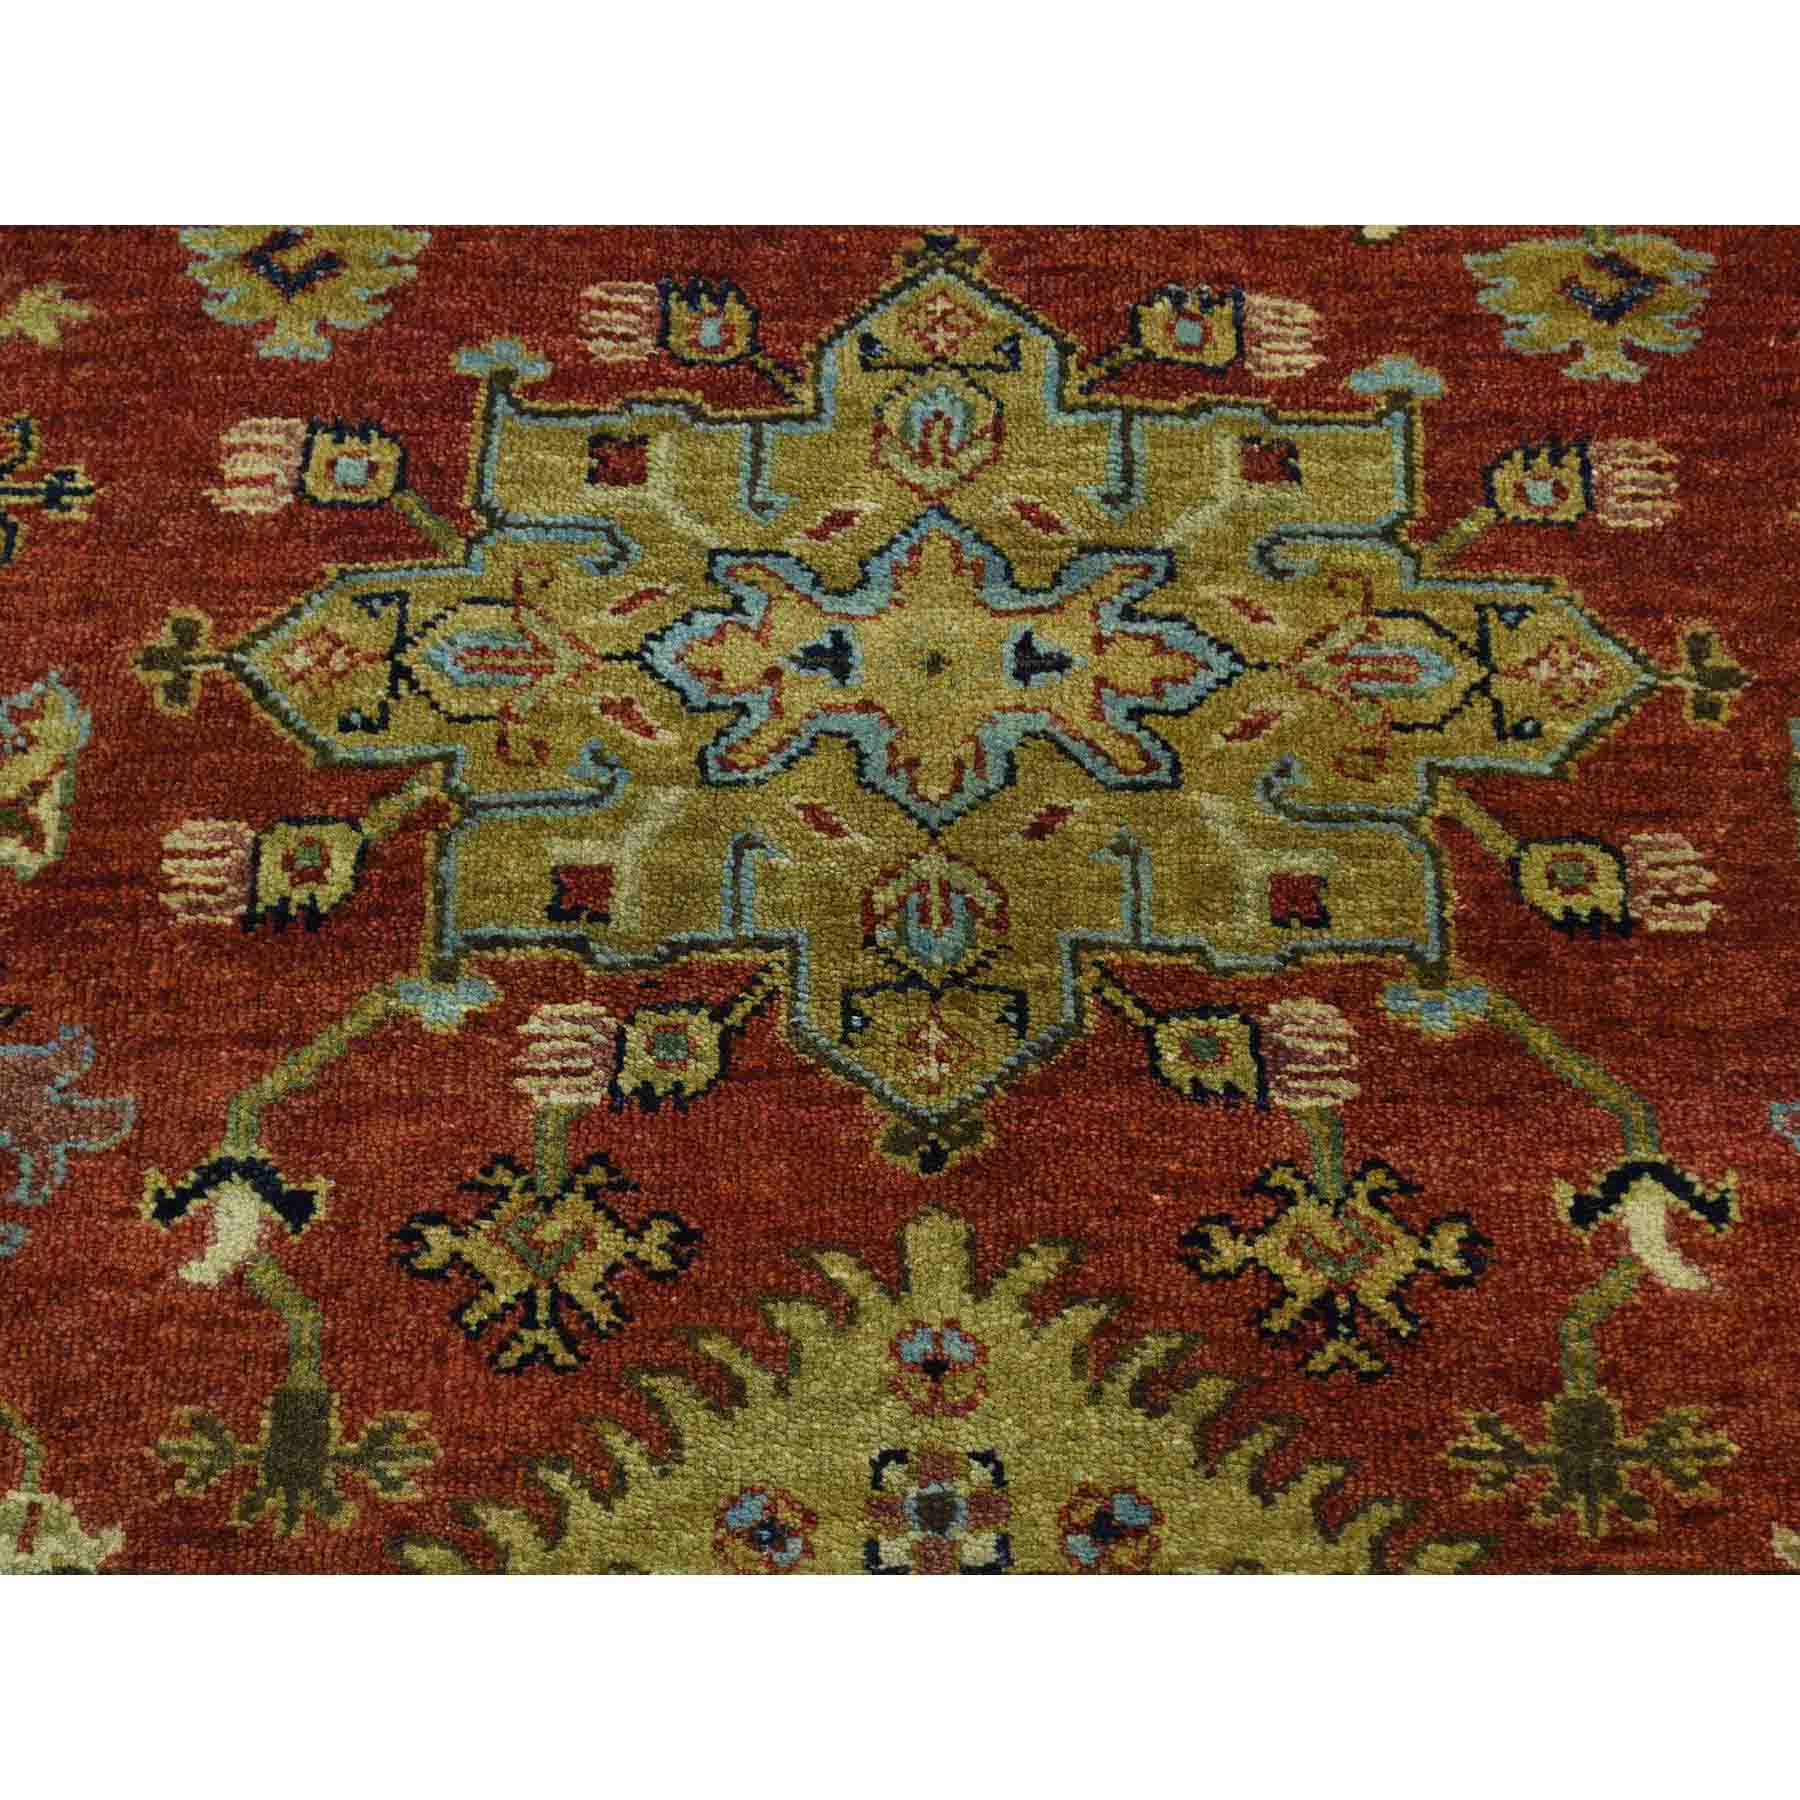 Heriz-Hand-Knotted-Rug-167635